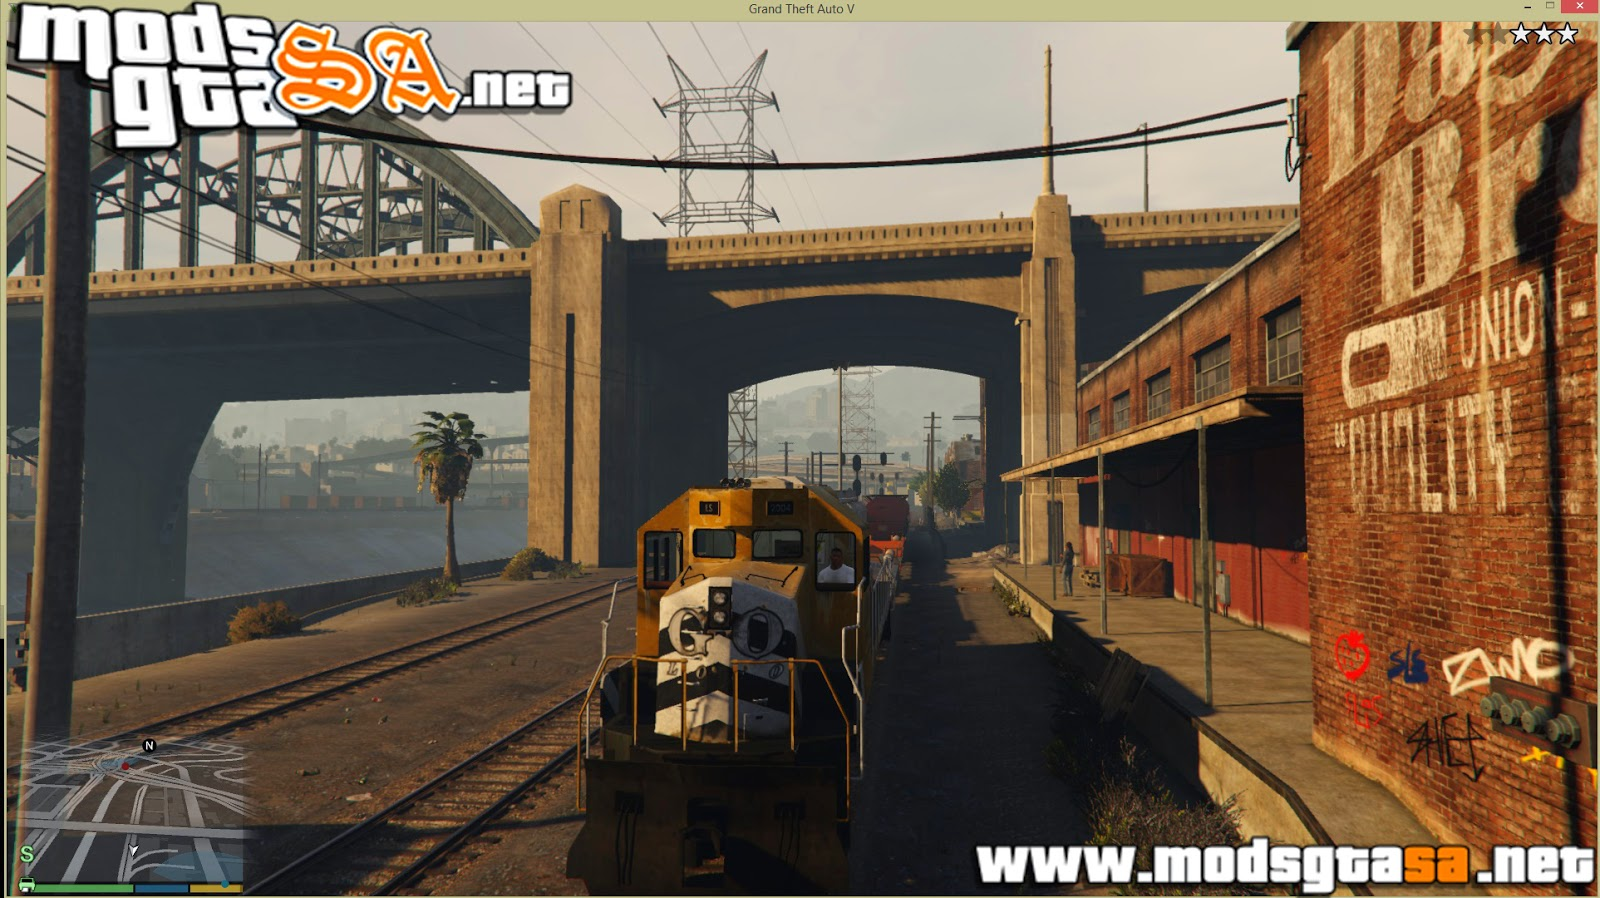 V - Mod Driver Train para GTA V PC